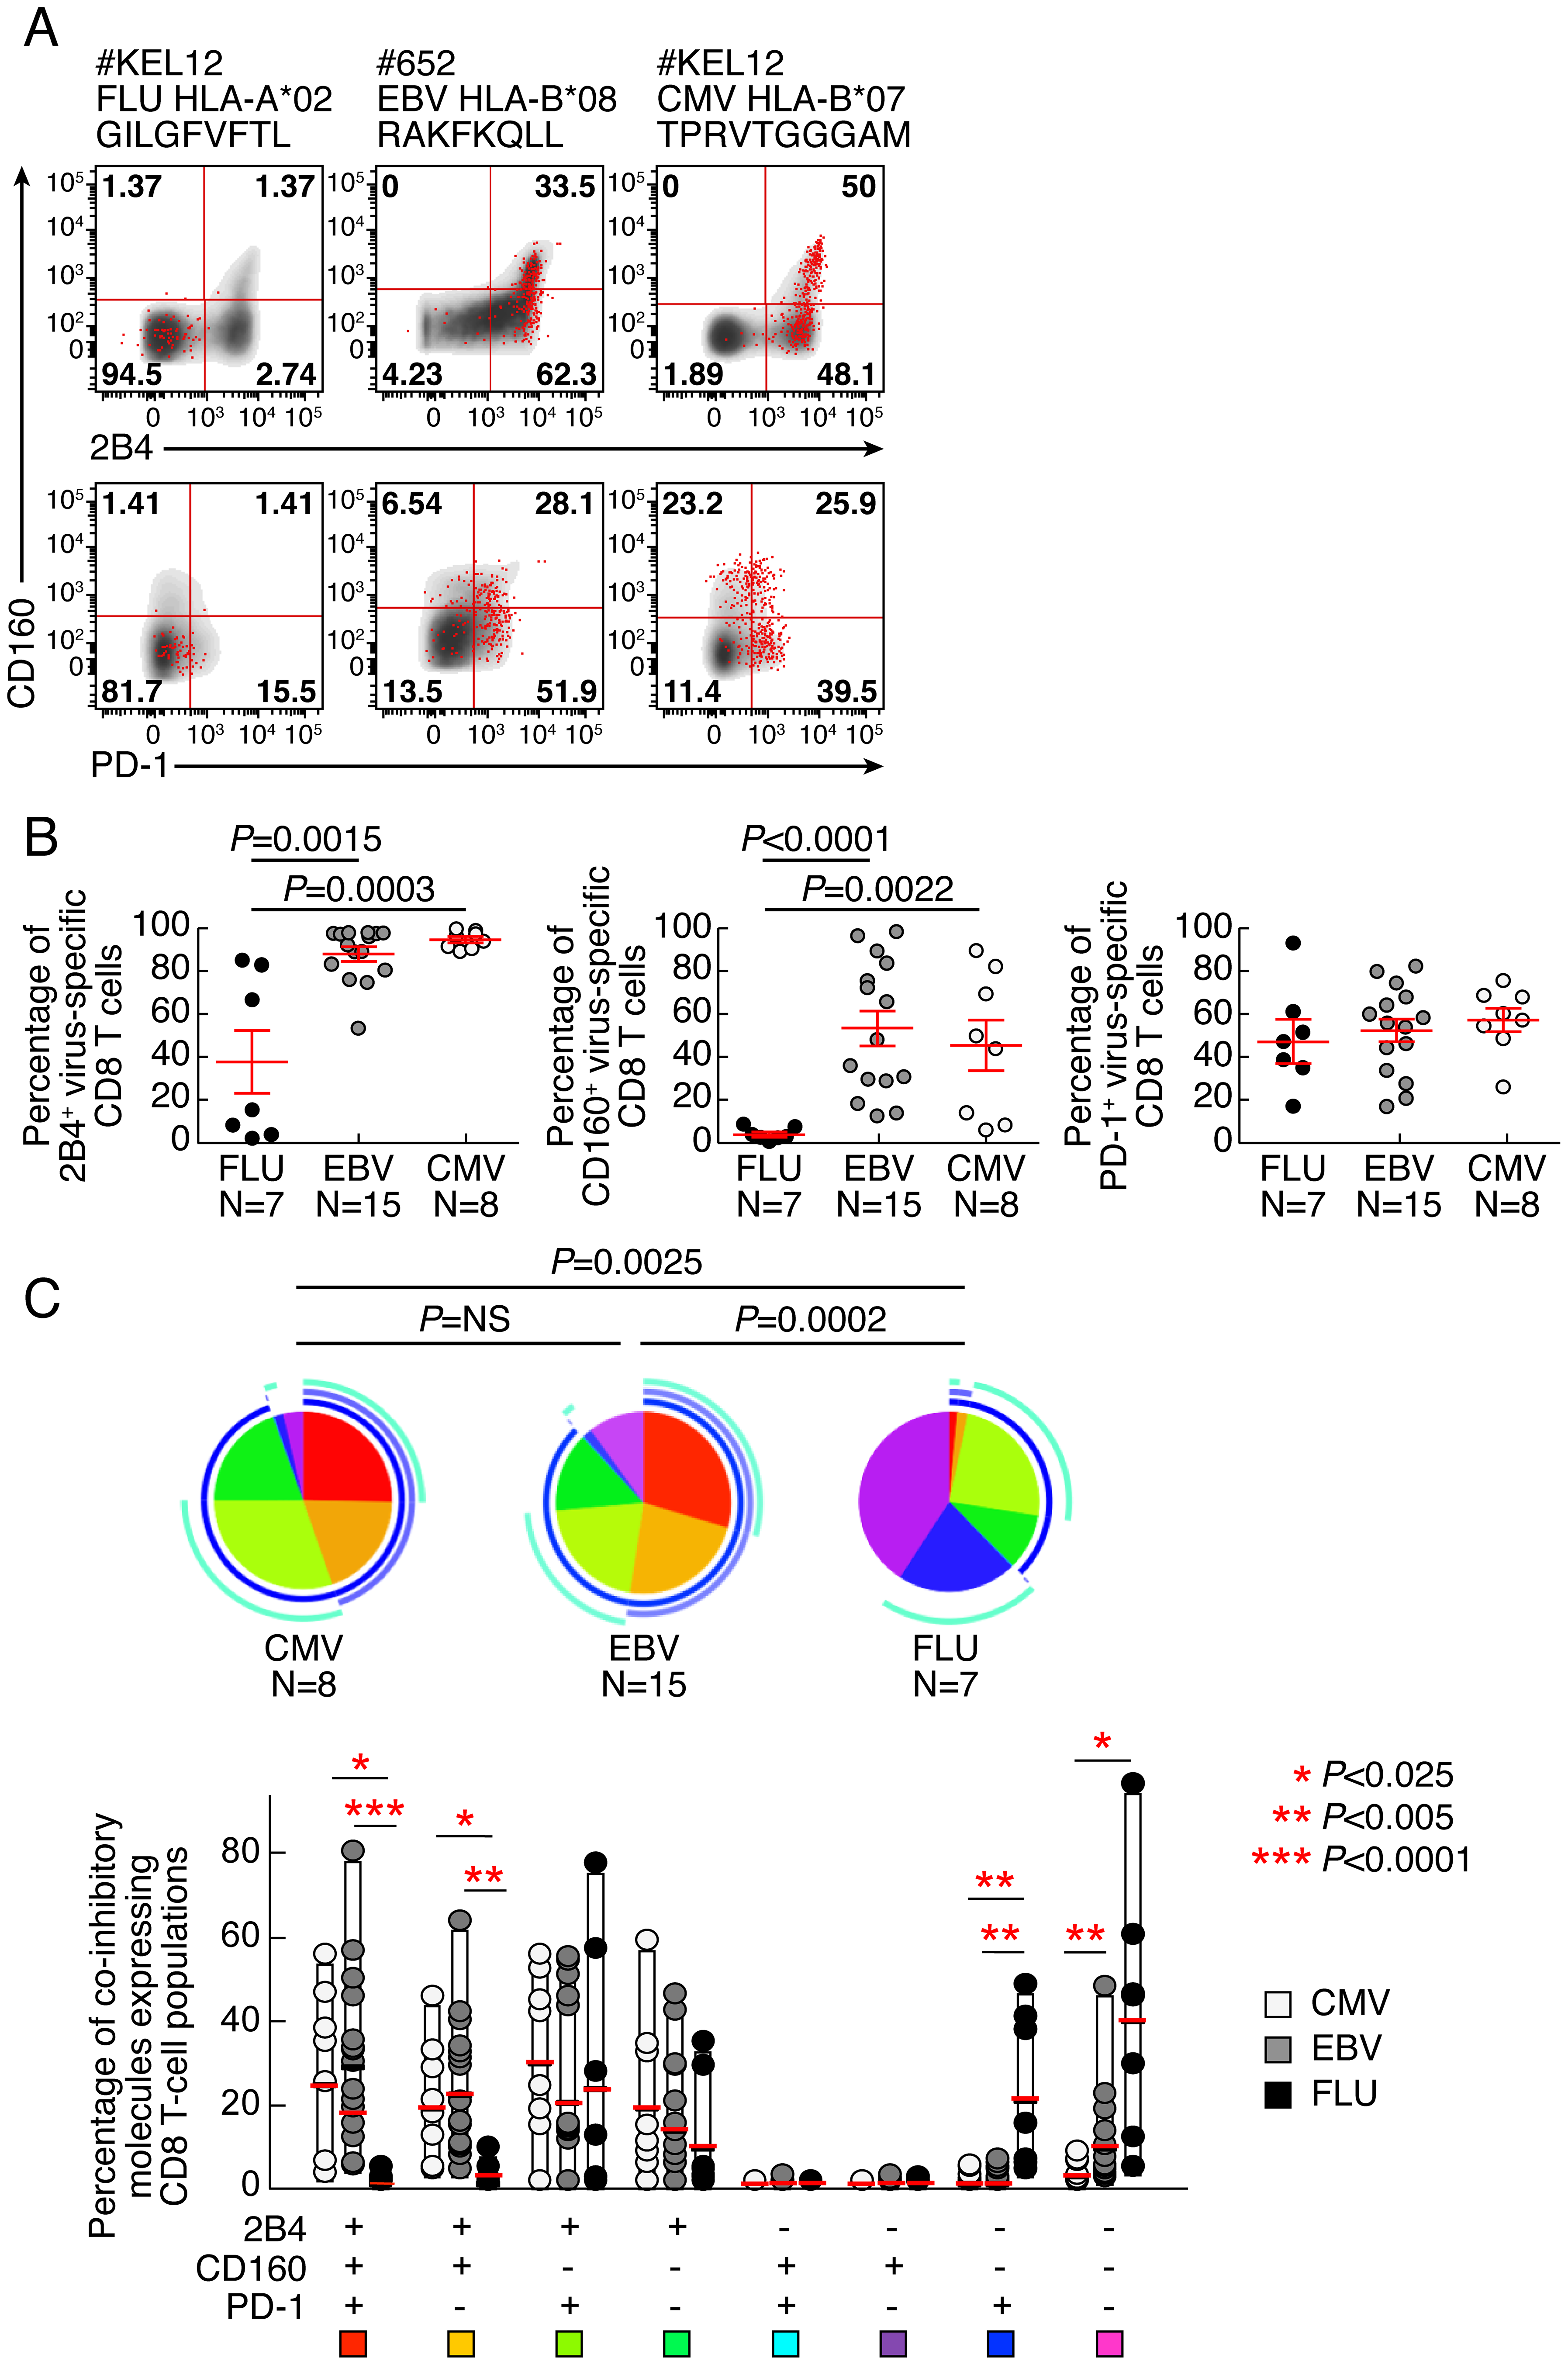 EBV and CMV-specific CD8 T cells express significantly more CD160 than Flu-specific CD8 T cells.